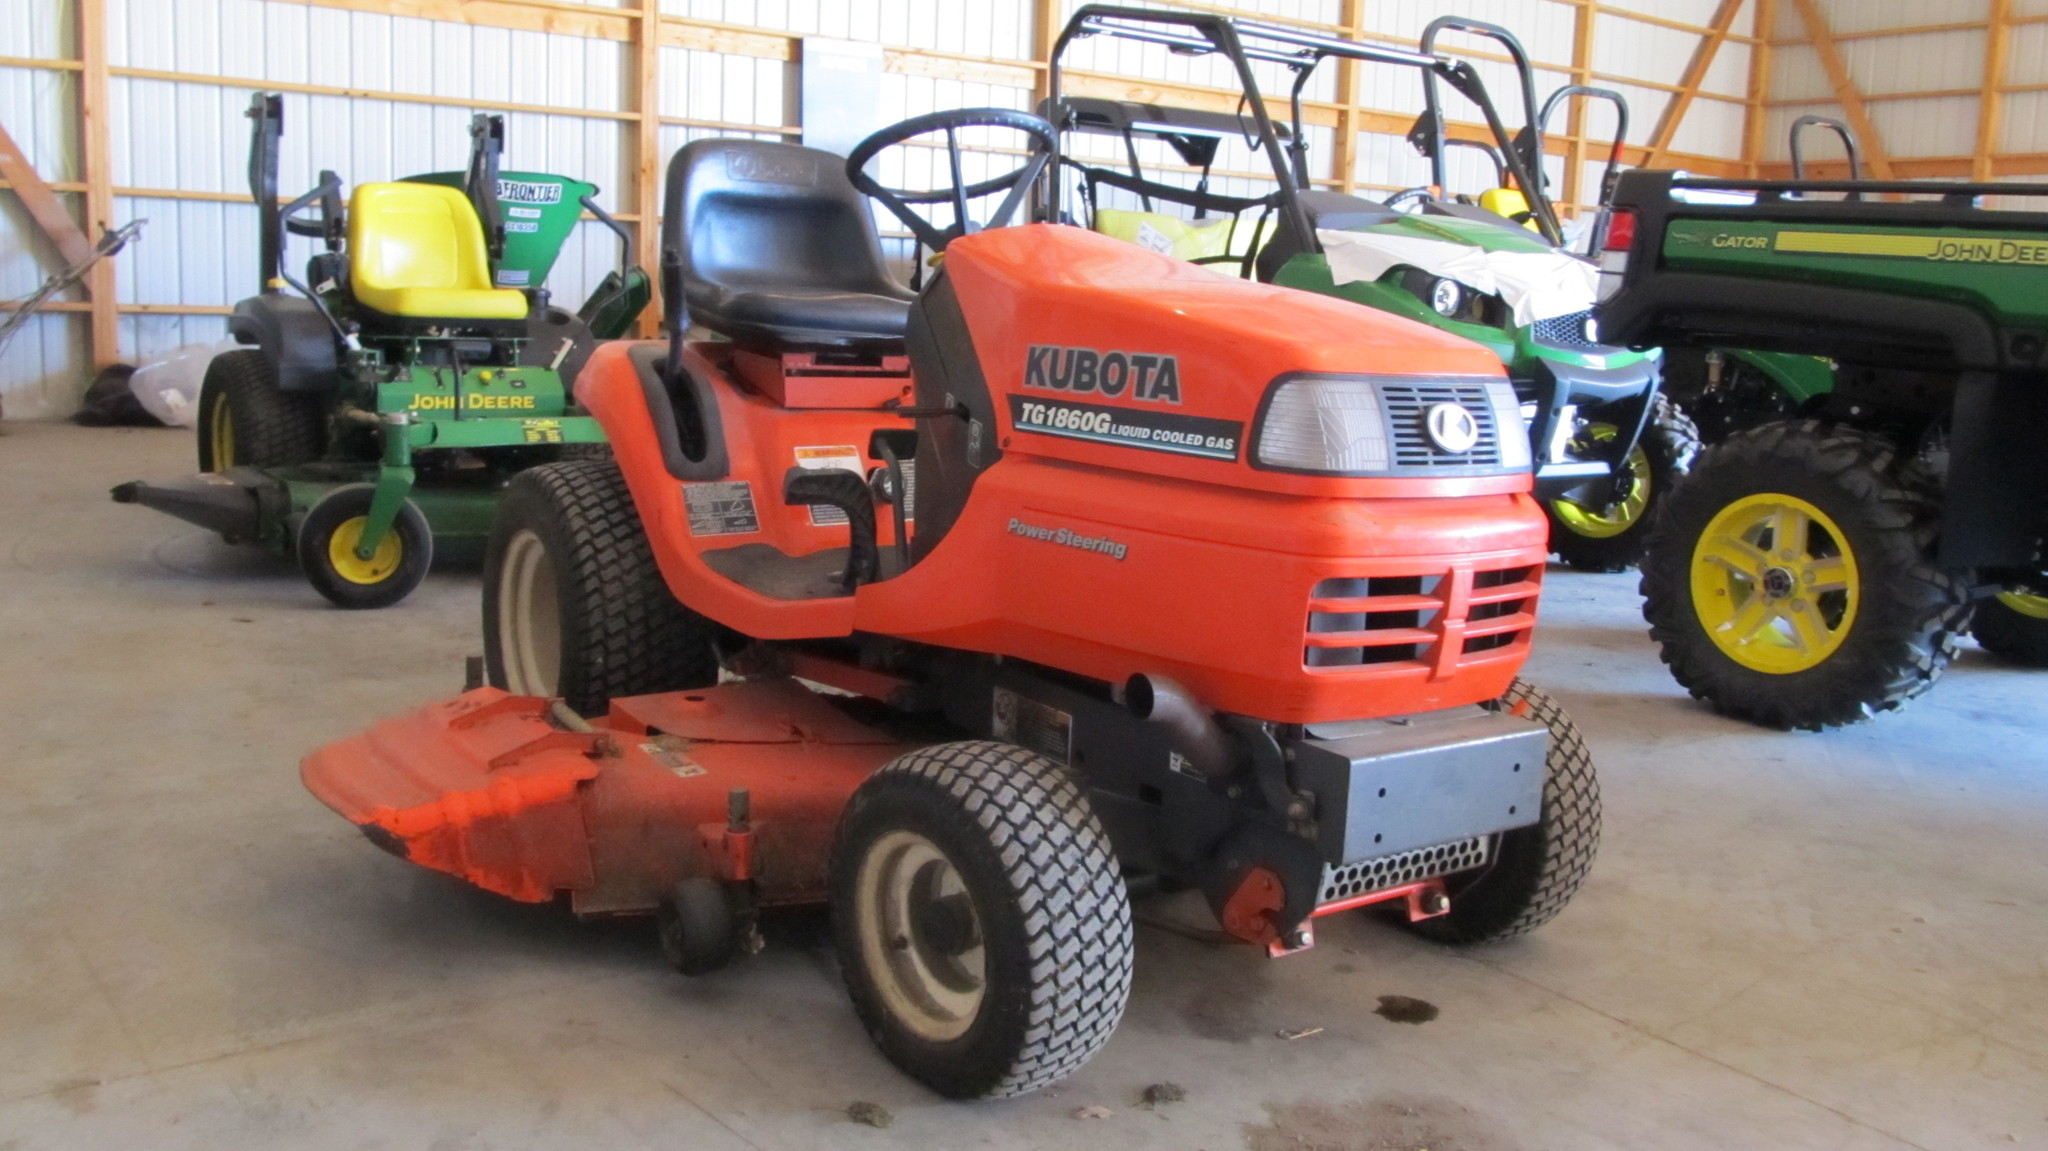 Kubota tg1860g lawn garden tractors for sale 64953 for Garden machinery for sale